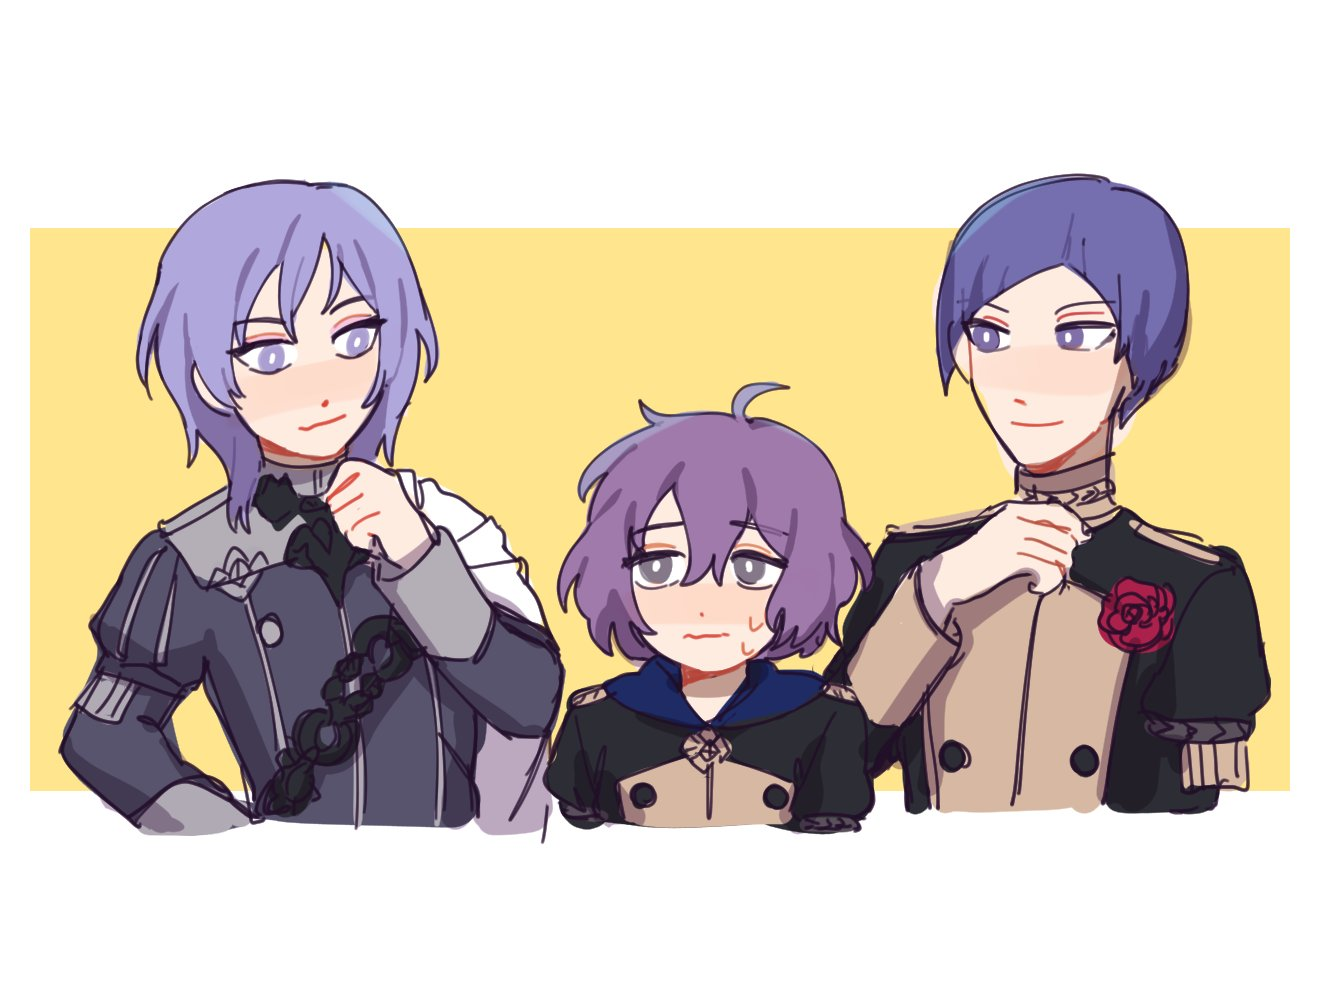 1girl 2boys ahoge bernadetta_von_varley cape closed_mouth epaulettes fire_emblem fire_emblem:_three_houses flower garreg_mach_monastery_uniform grey_eyes iincos long_sleeves lorenz_hellman_gloucester medium_hair messy_hair multiple_boys nervous ornament purple_hair rose short_hair simple_background smile smug sweat thinking uniform upper_body violet_eyes wavy_mouth yuri_(fire_emblem)